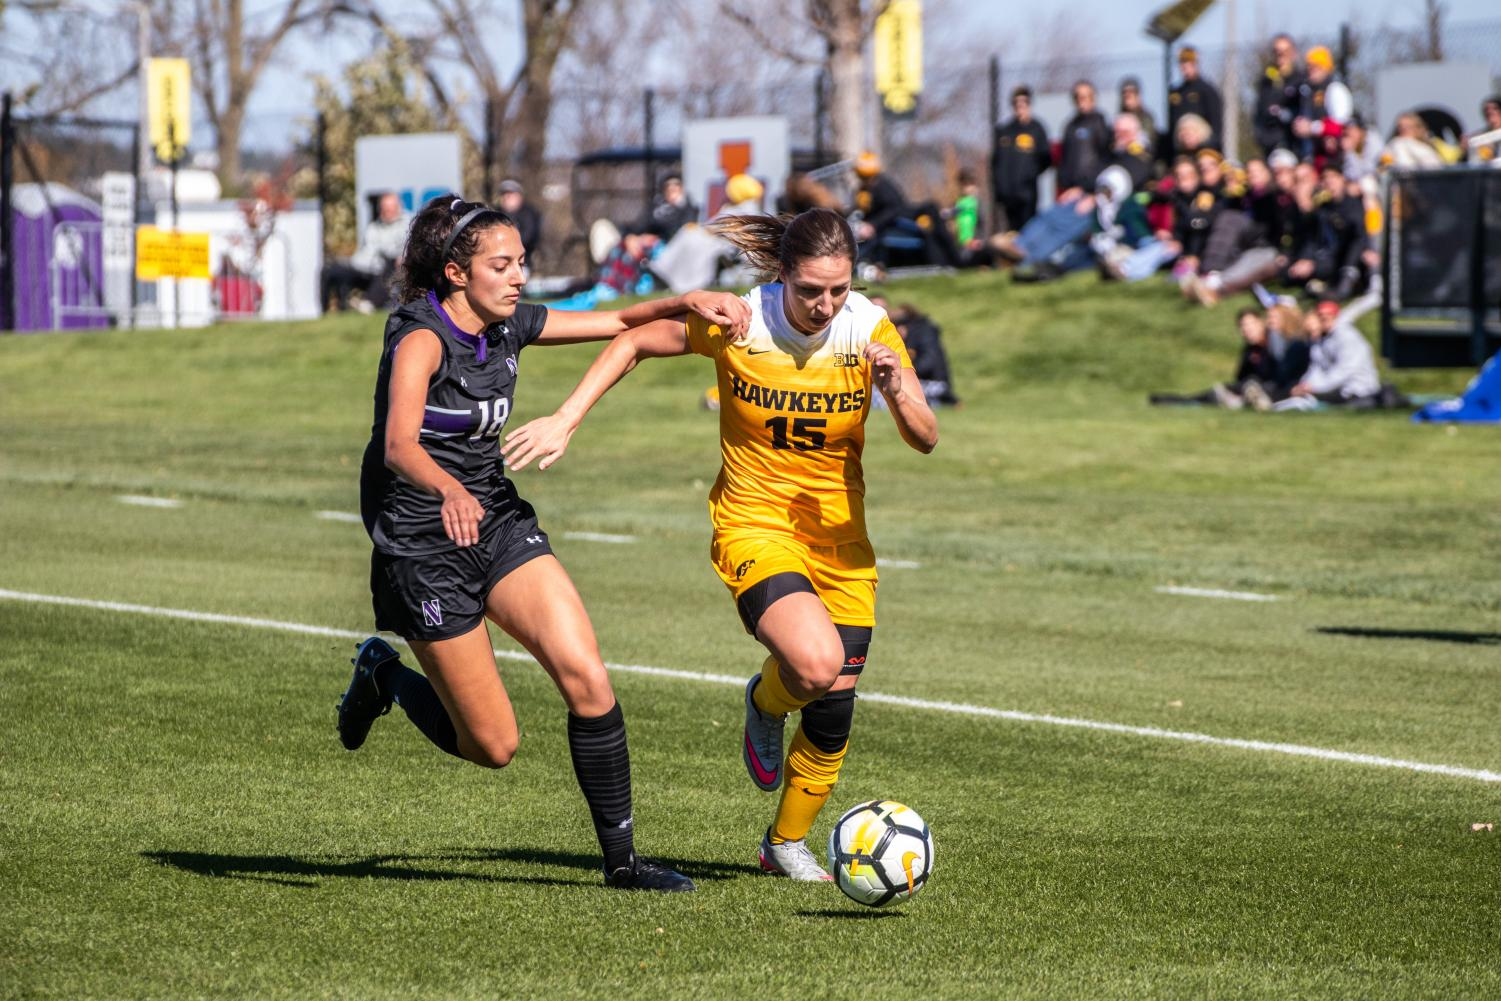 Iowa forward Rose Ripslinger dribbles the ball up the field during Iowa's game against Northwestern on Oct. 21, 2018. Iowa tied Northwestern 1-1.